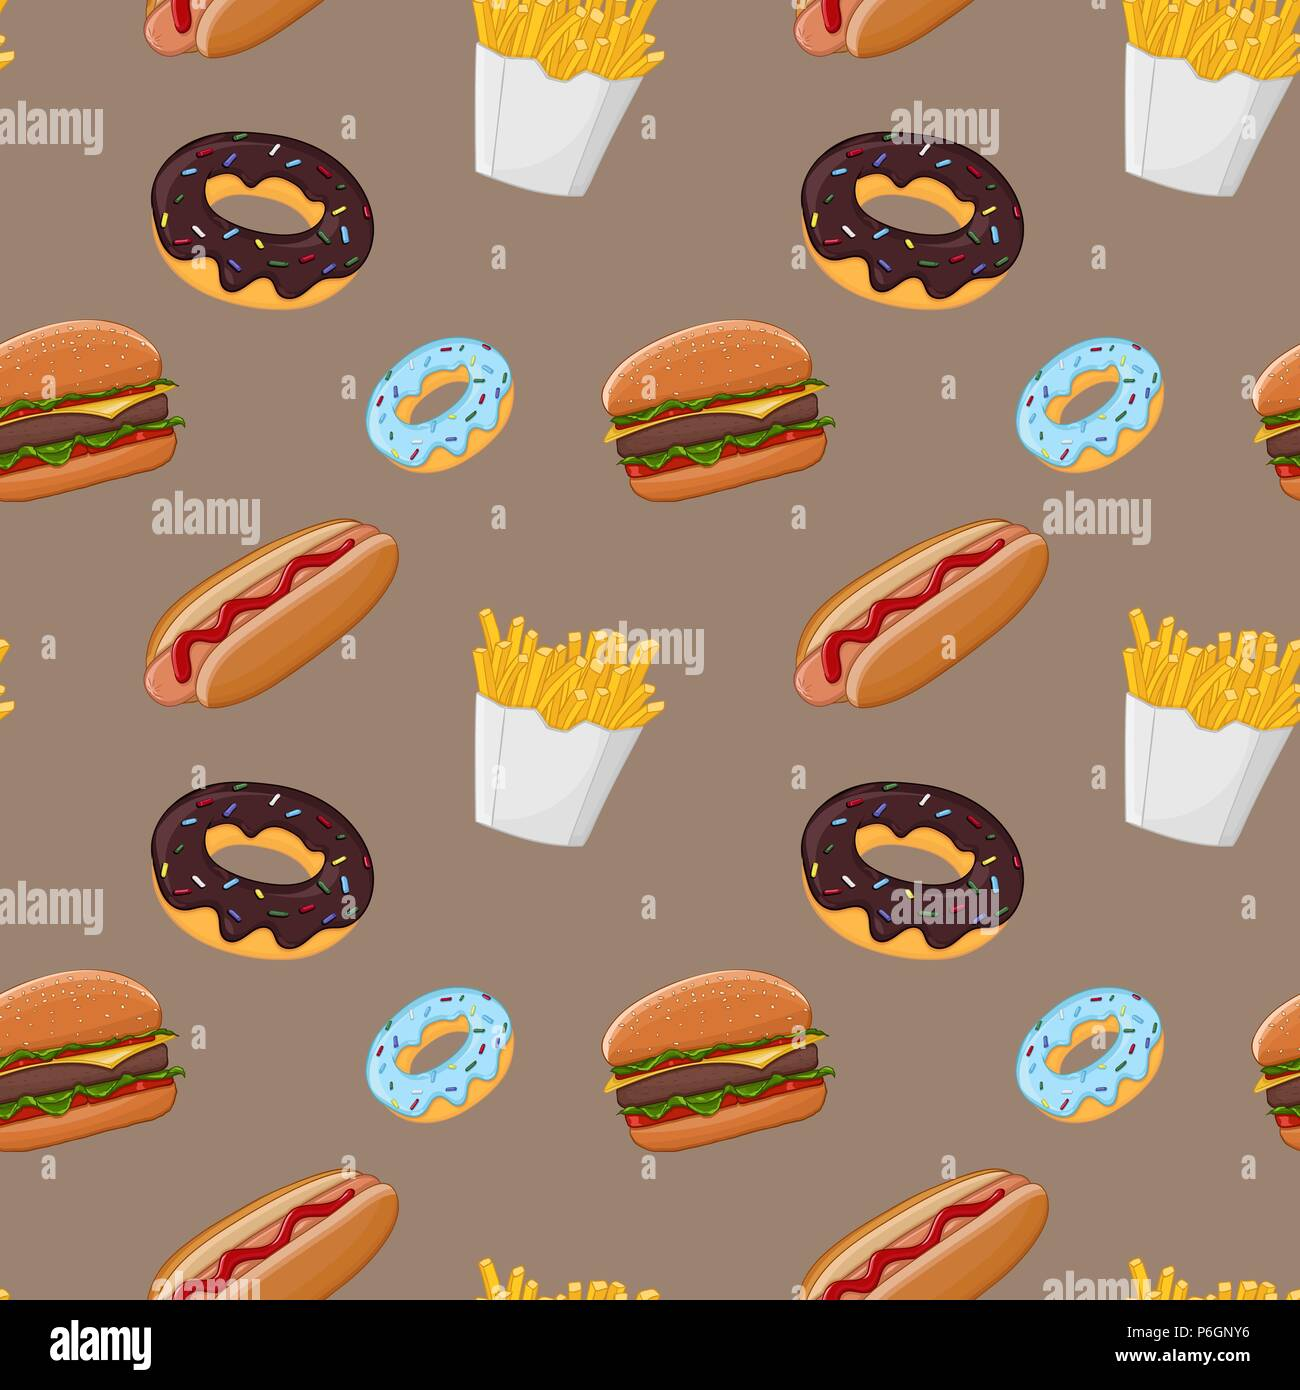 Fast food seamless pattern. Colored vector illustration on brown background - Stock Vector